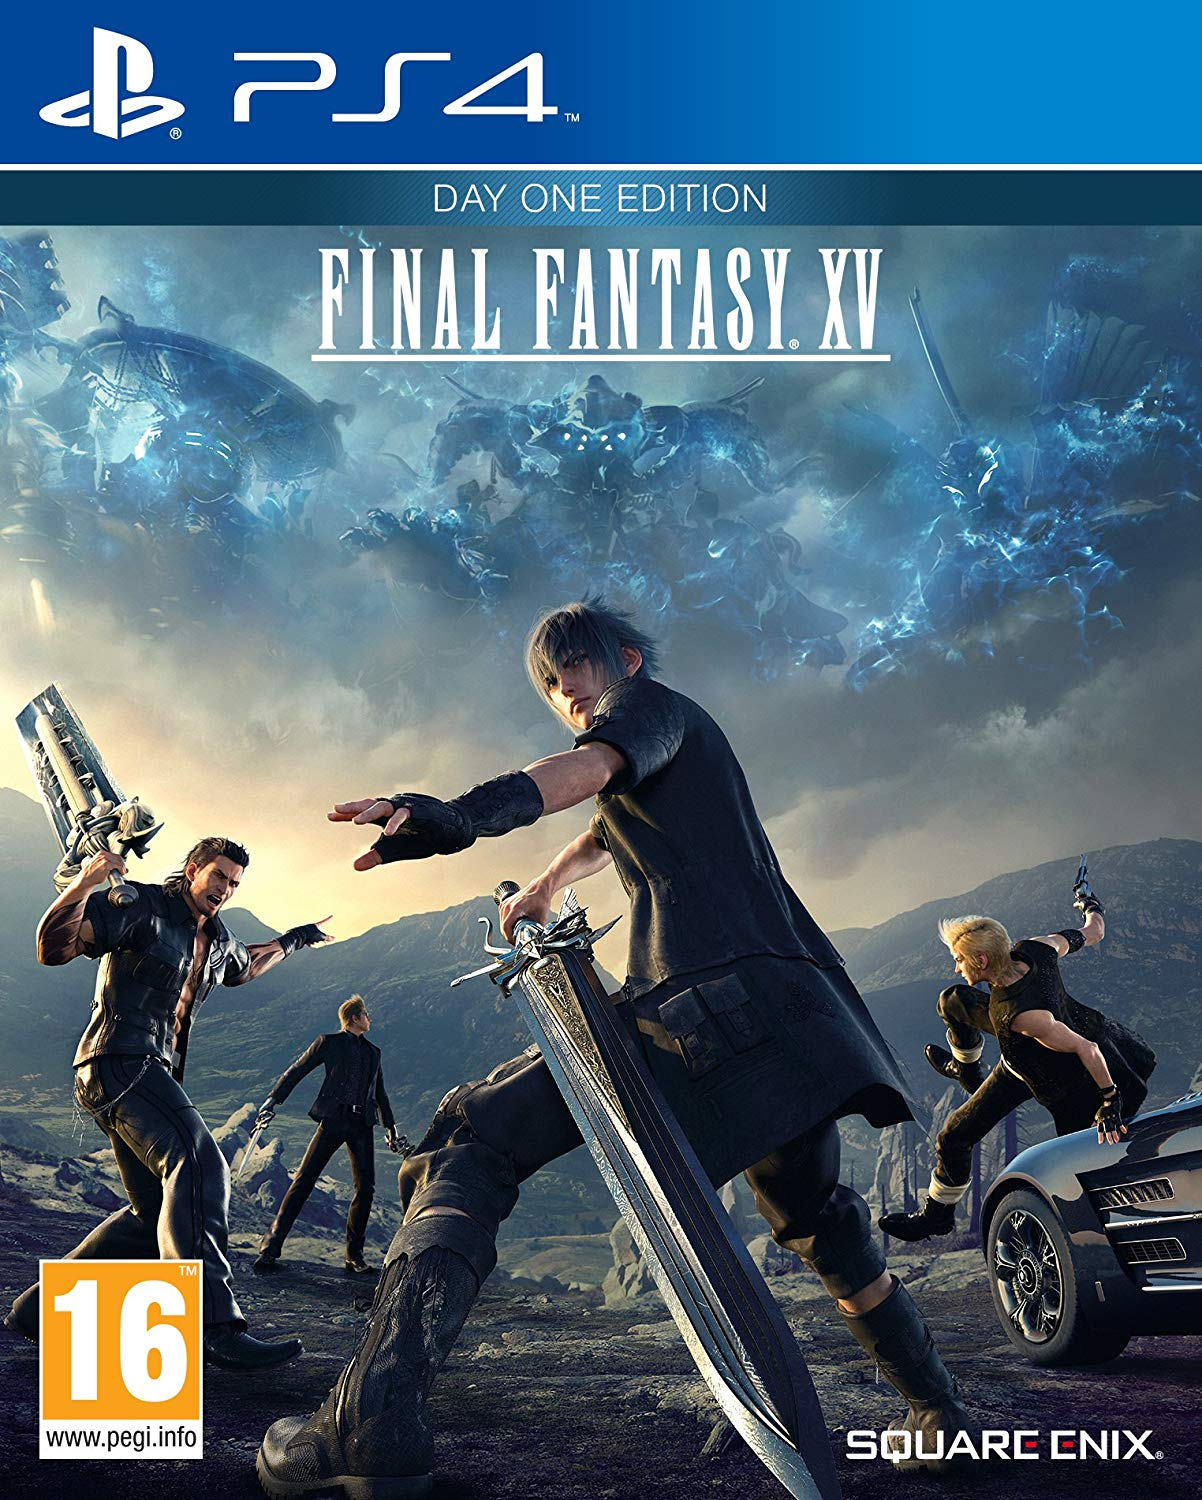 FINAL FANTASY XV - DAY ONE EDITION - Xone